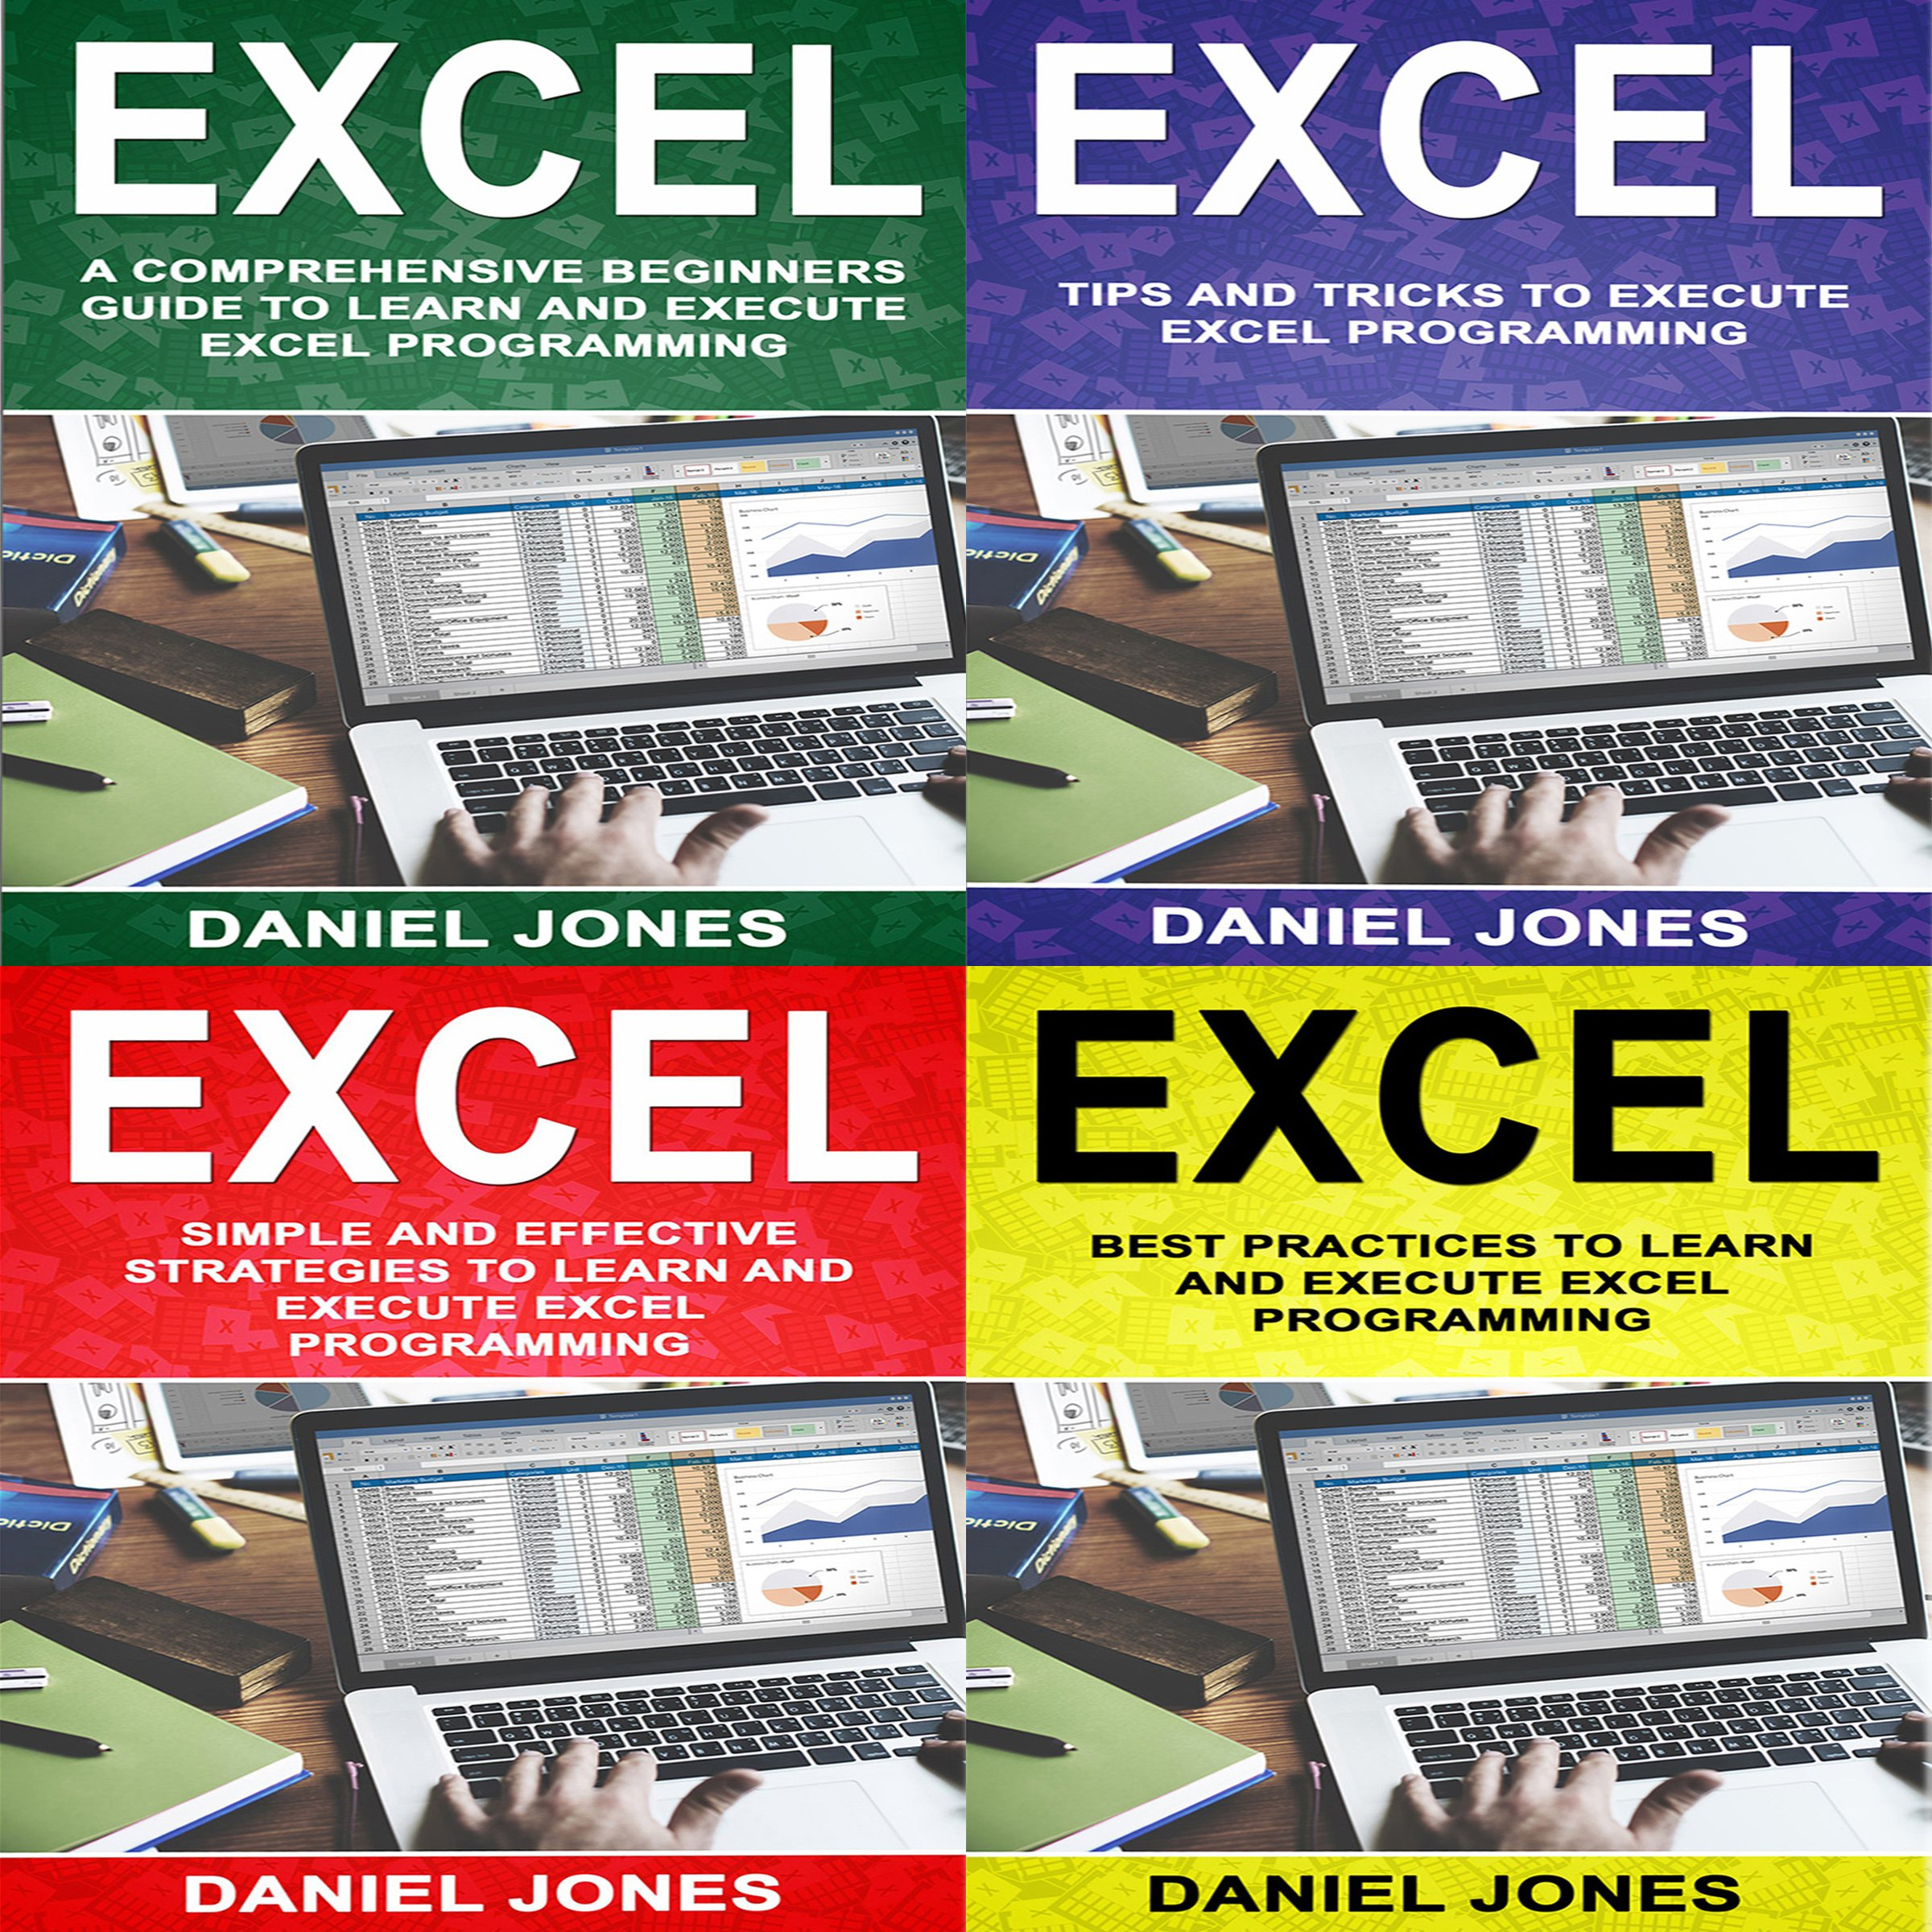 Excel: Bible of 4 Manuscripts in 1: 4 Books in 1: Beginner's Guide + Tips and Tricks + Simple and Effective Strategies + Best Practices to Learn Excel Programming Efficiently